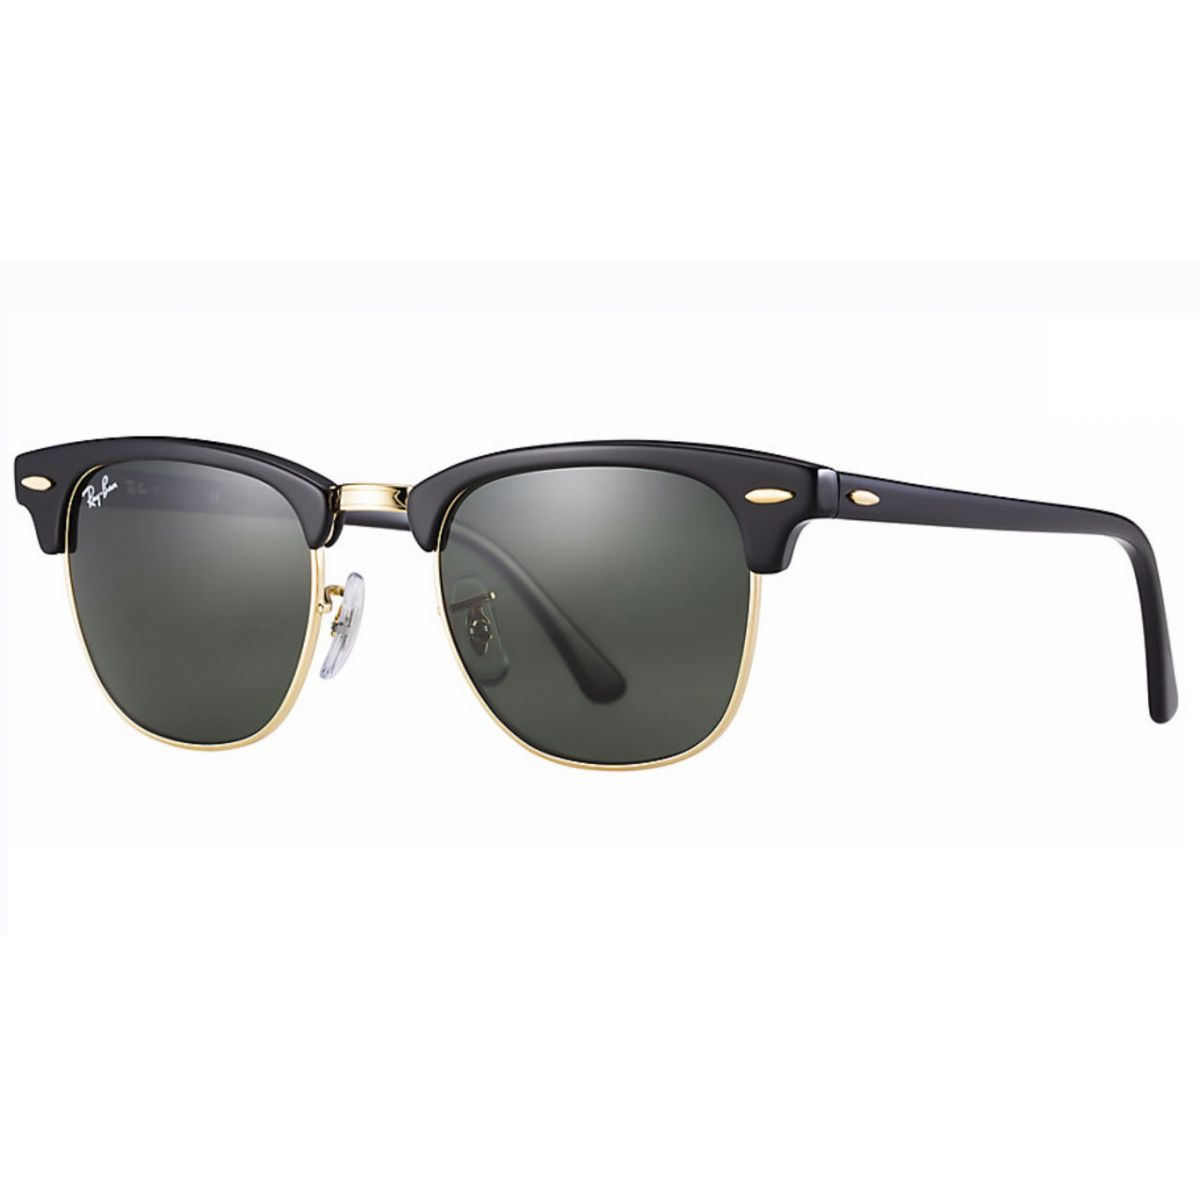 Oculos Ray Ban Aviator Replica   Louisiana Bucket Brigade 3910fe24cd